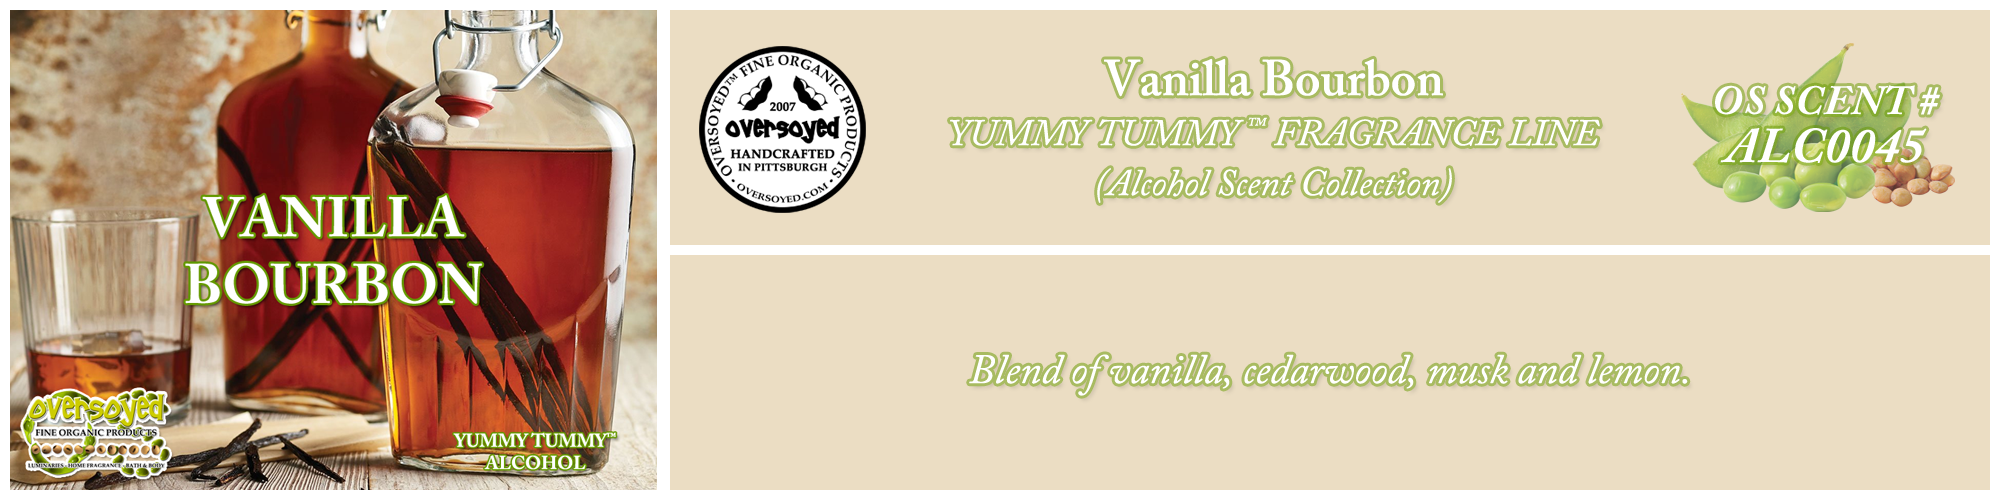 Vanilla Bourbon Handcrafted Products Collection